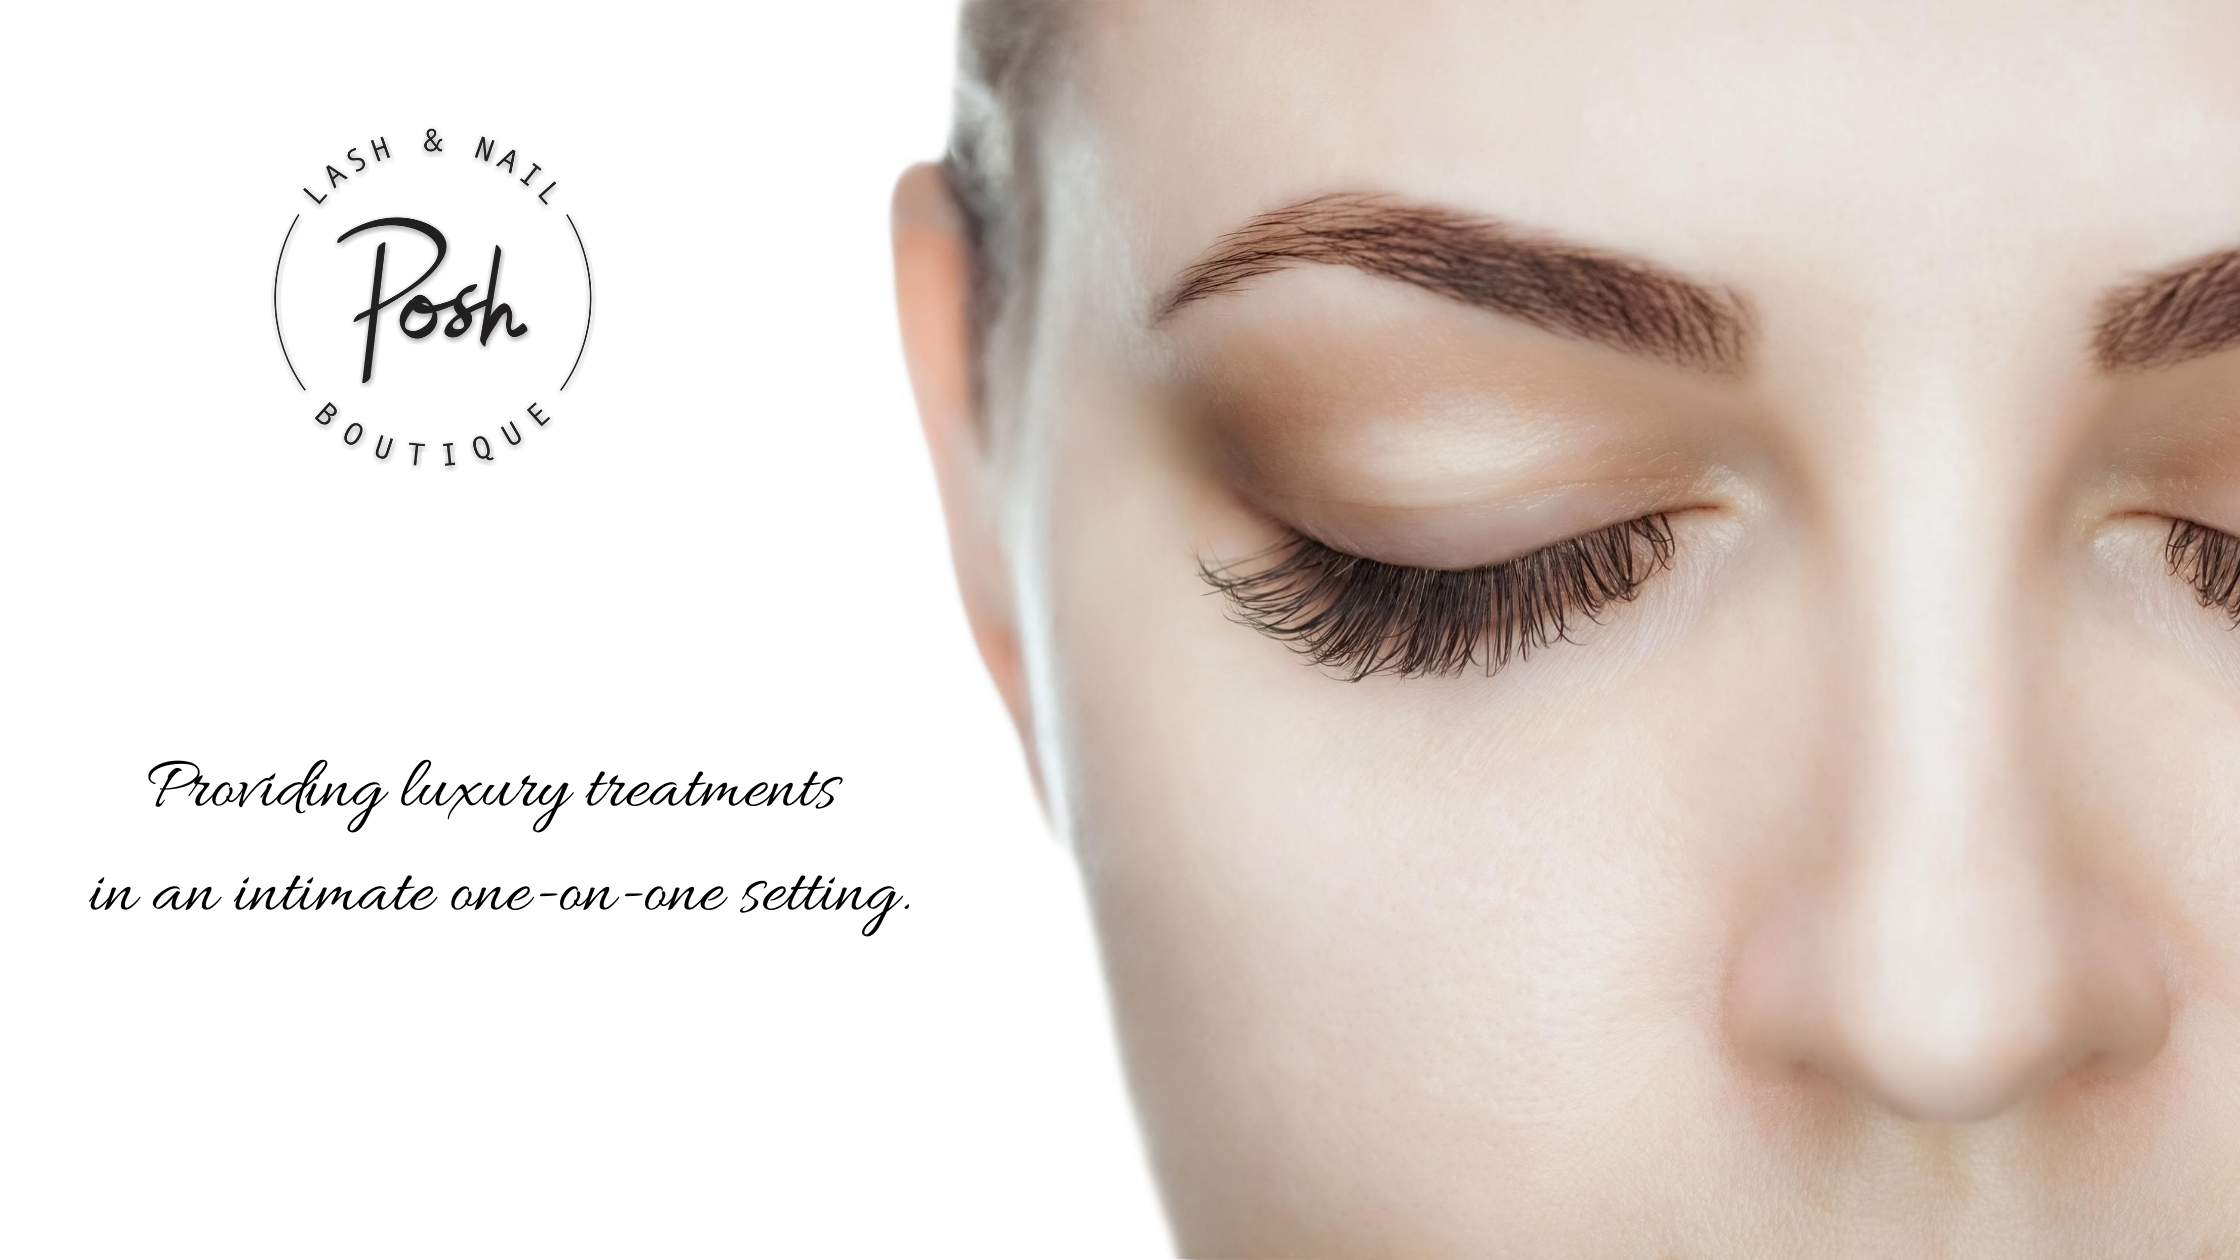 Providing luxury treatments in an intimate one on one setting. (1)